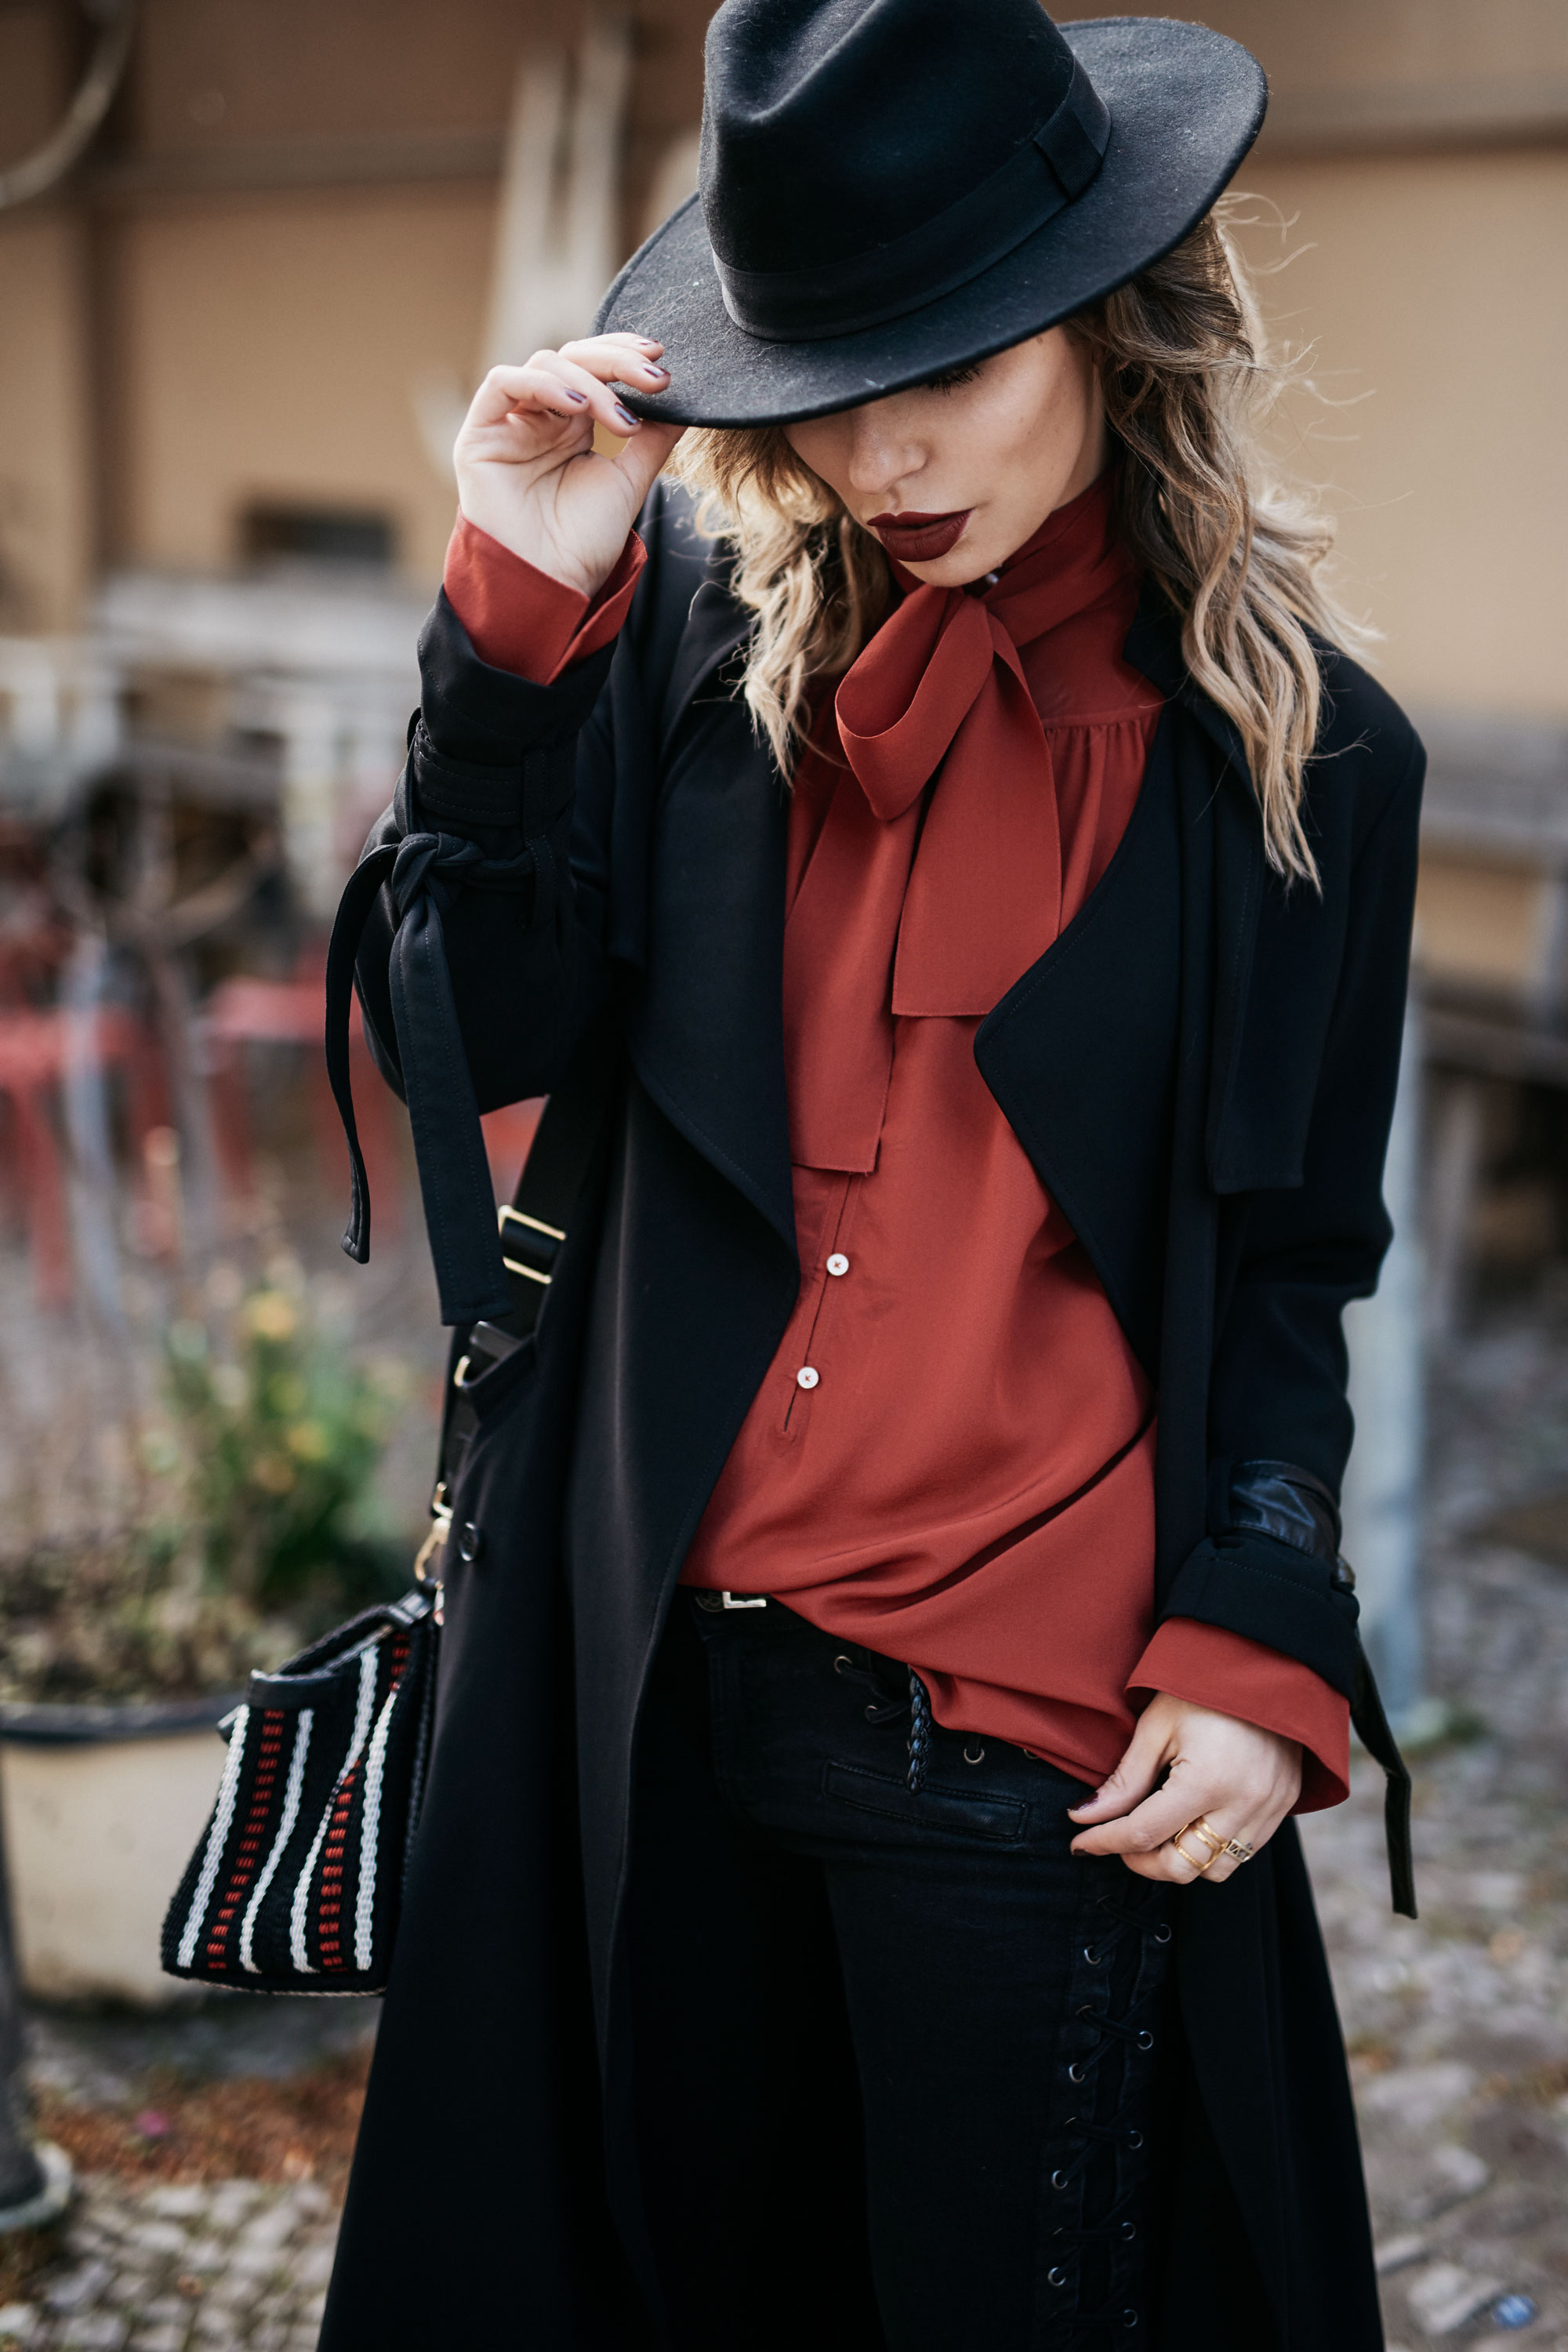 Designer Summer Sale | outfit: edgy, dark, sexy, classy, feminine | wearing a long black trench coat, laced up black jeans, red bow tie blouse